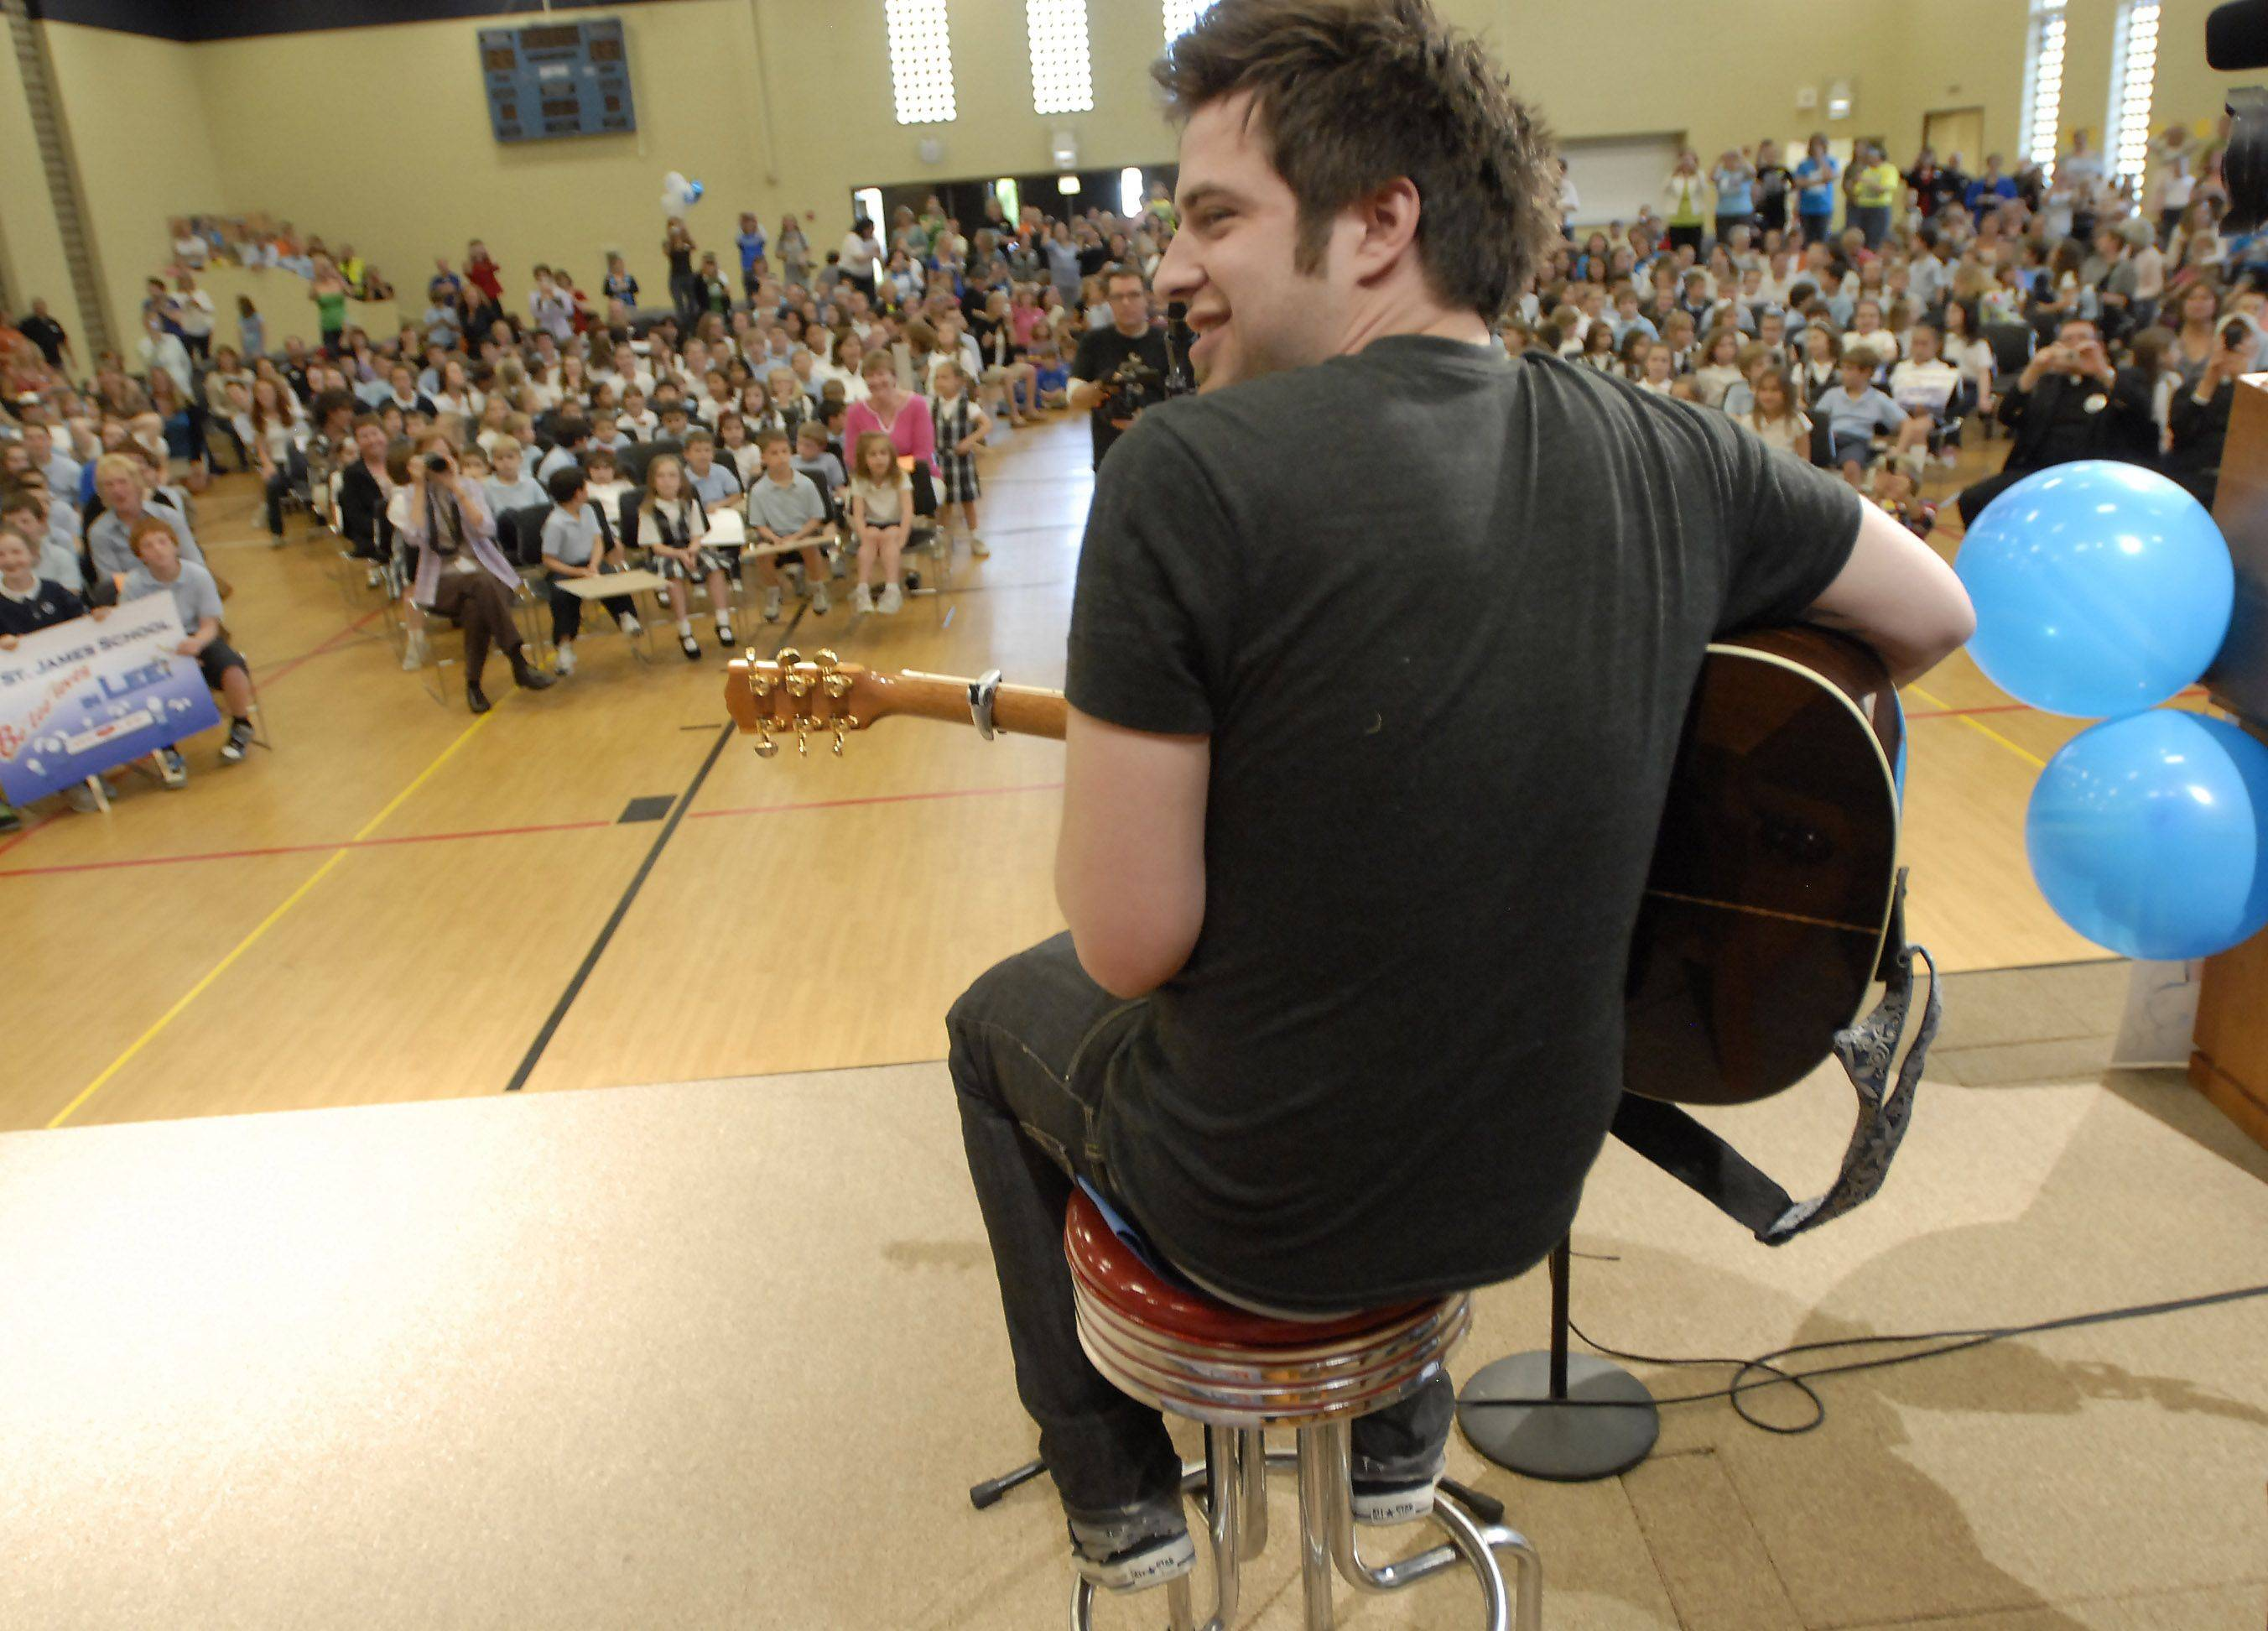 Lee DeWyze laughs when the bell goes off as he begins singing at St. James Catholic School in Arlington Heights.